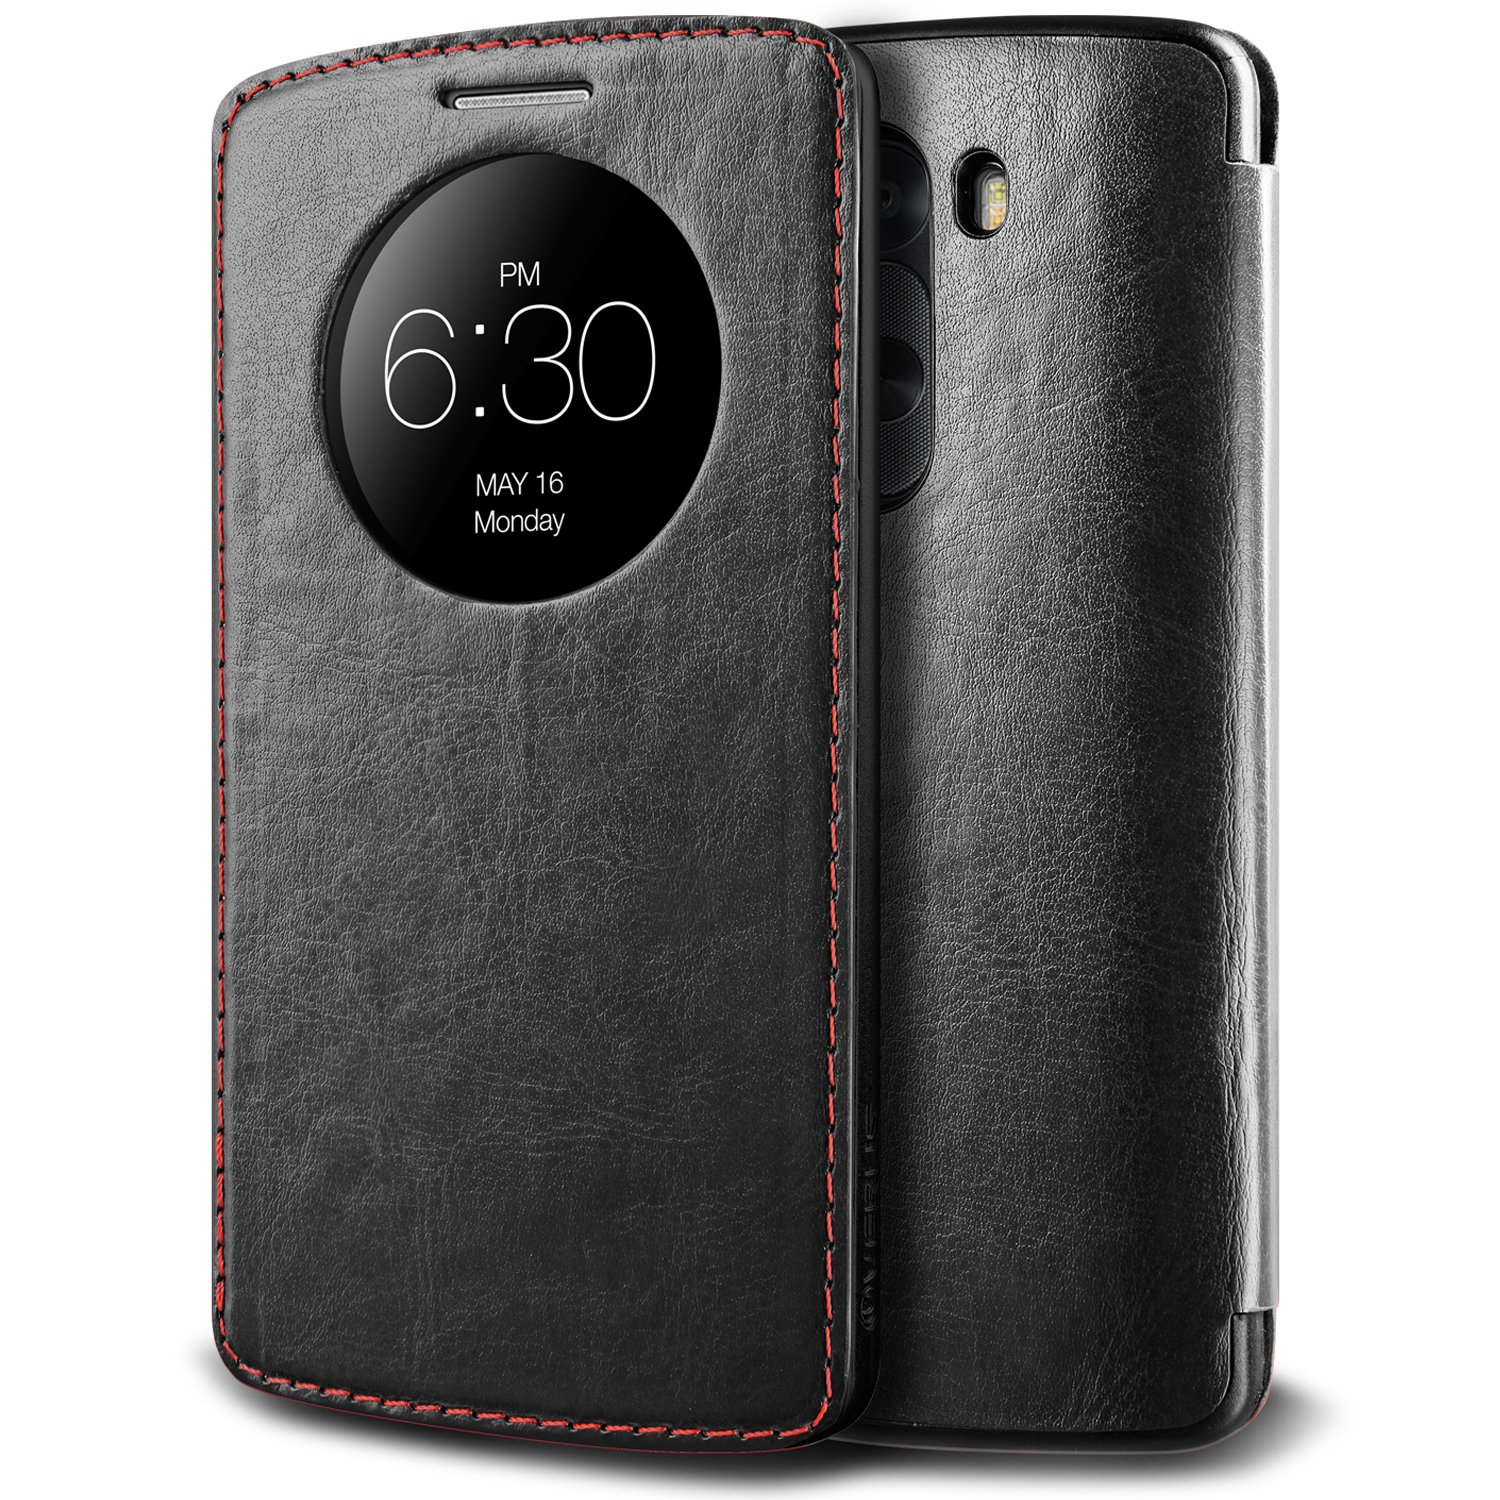 Best LG G3 Flip Cover Cases - GadgetGuruHD